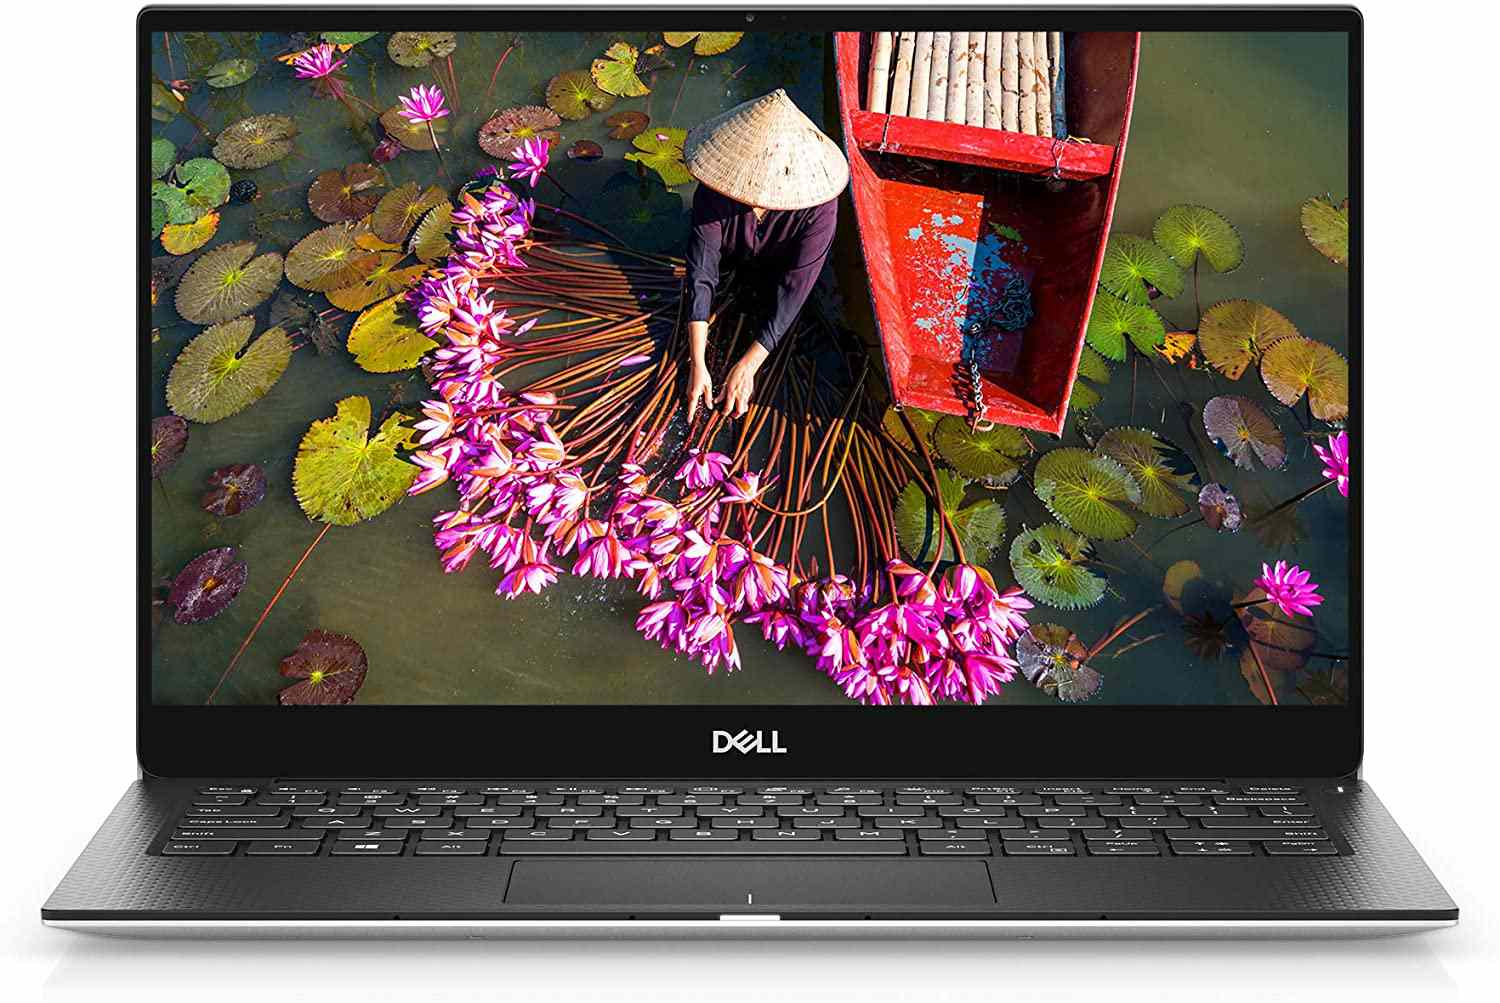 Dell XPS 13 7390 (2020)